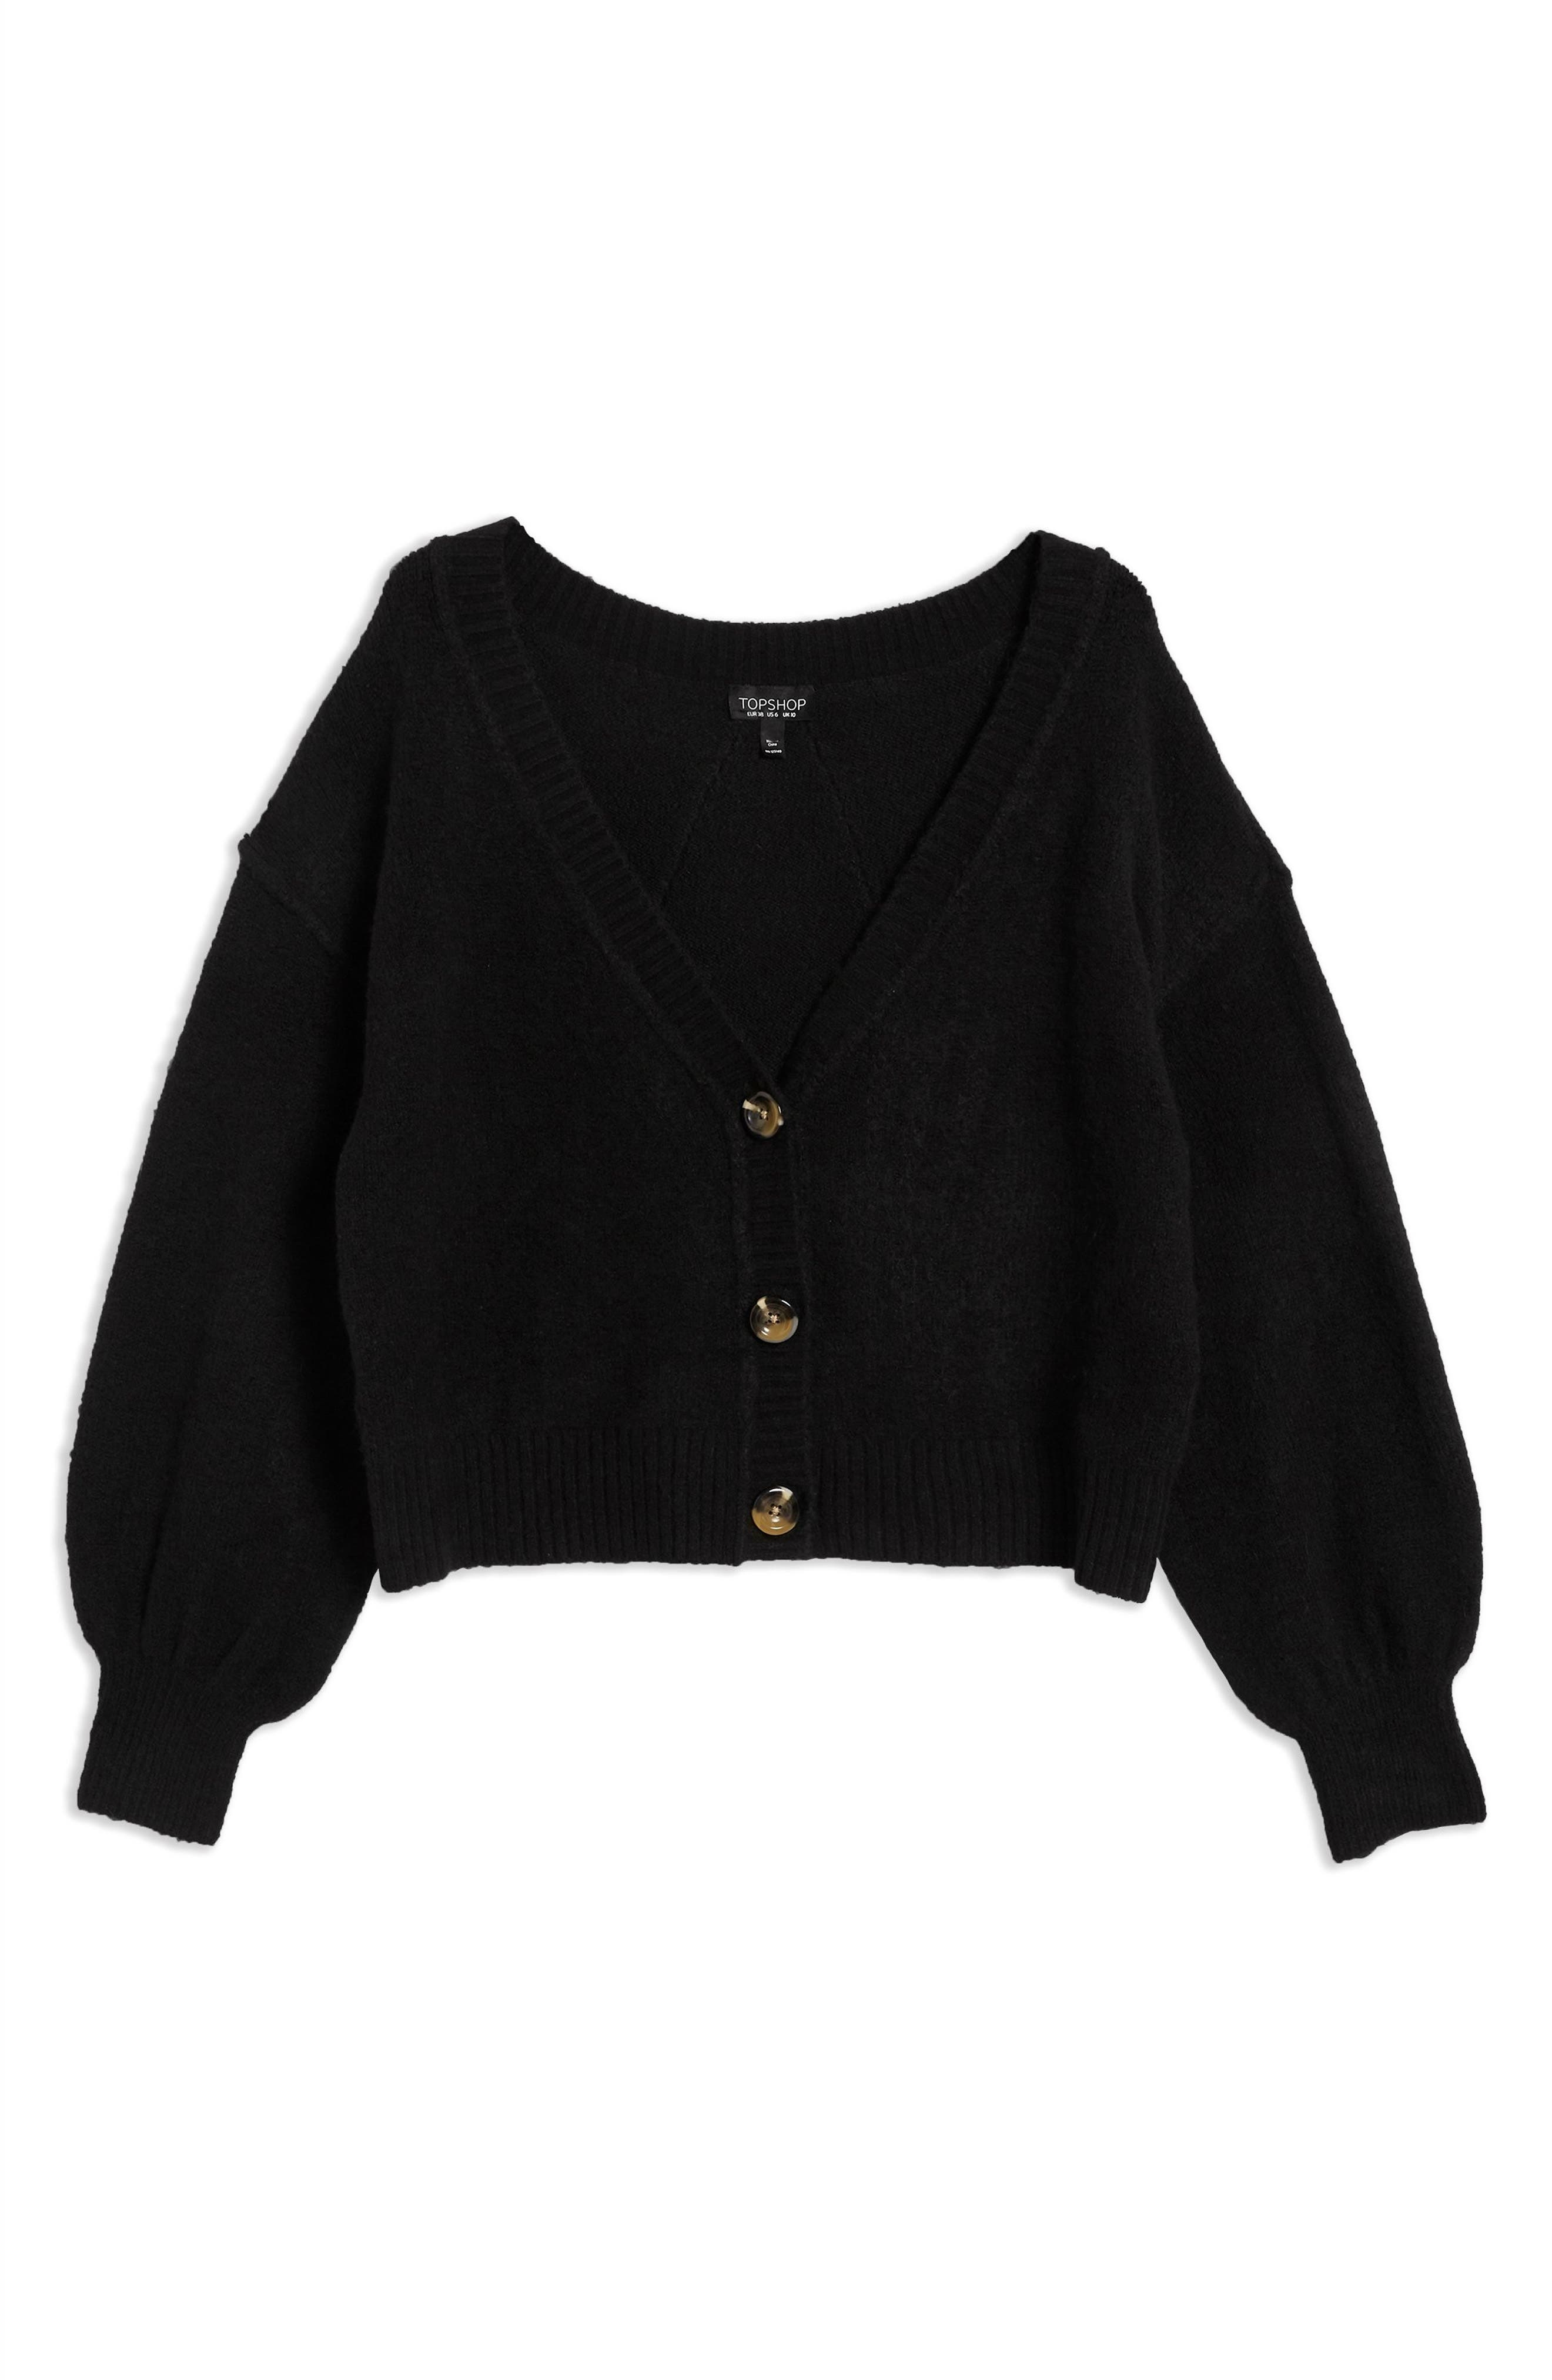 TOPSHOP,                             Horn Button Crop Cardigan,                             Alternate thumbnail 3, color,                             BLACK